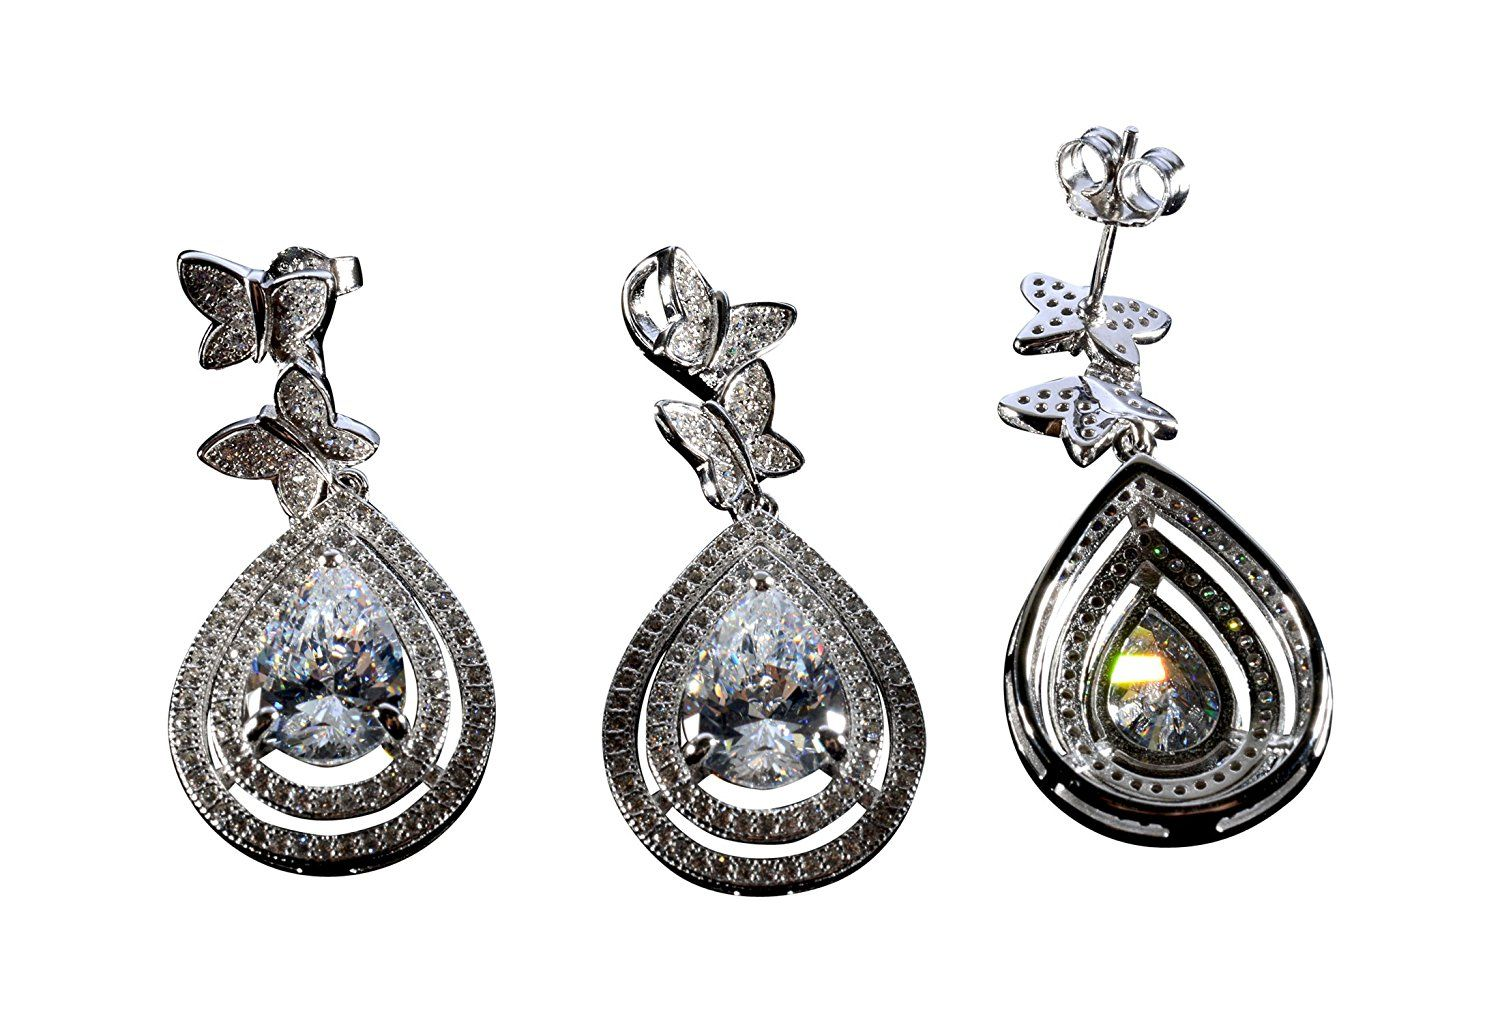 Silver wedding jewelry sets diamond zircon earrings pendant sets